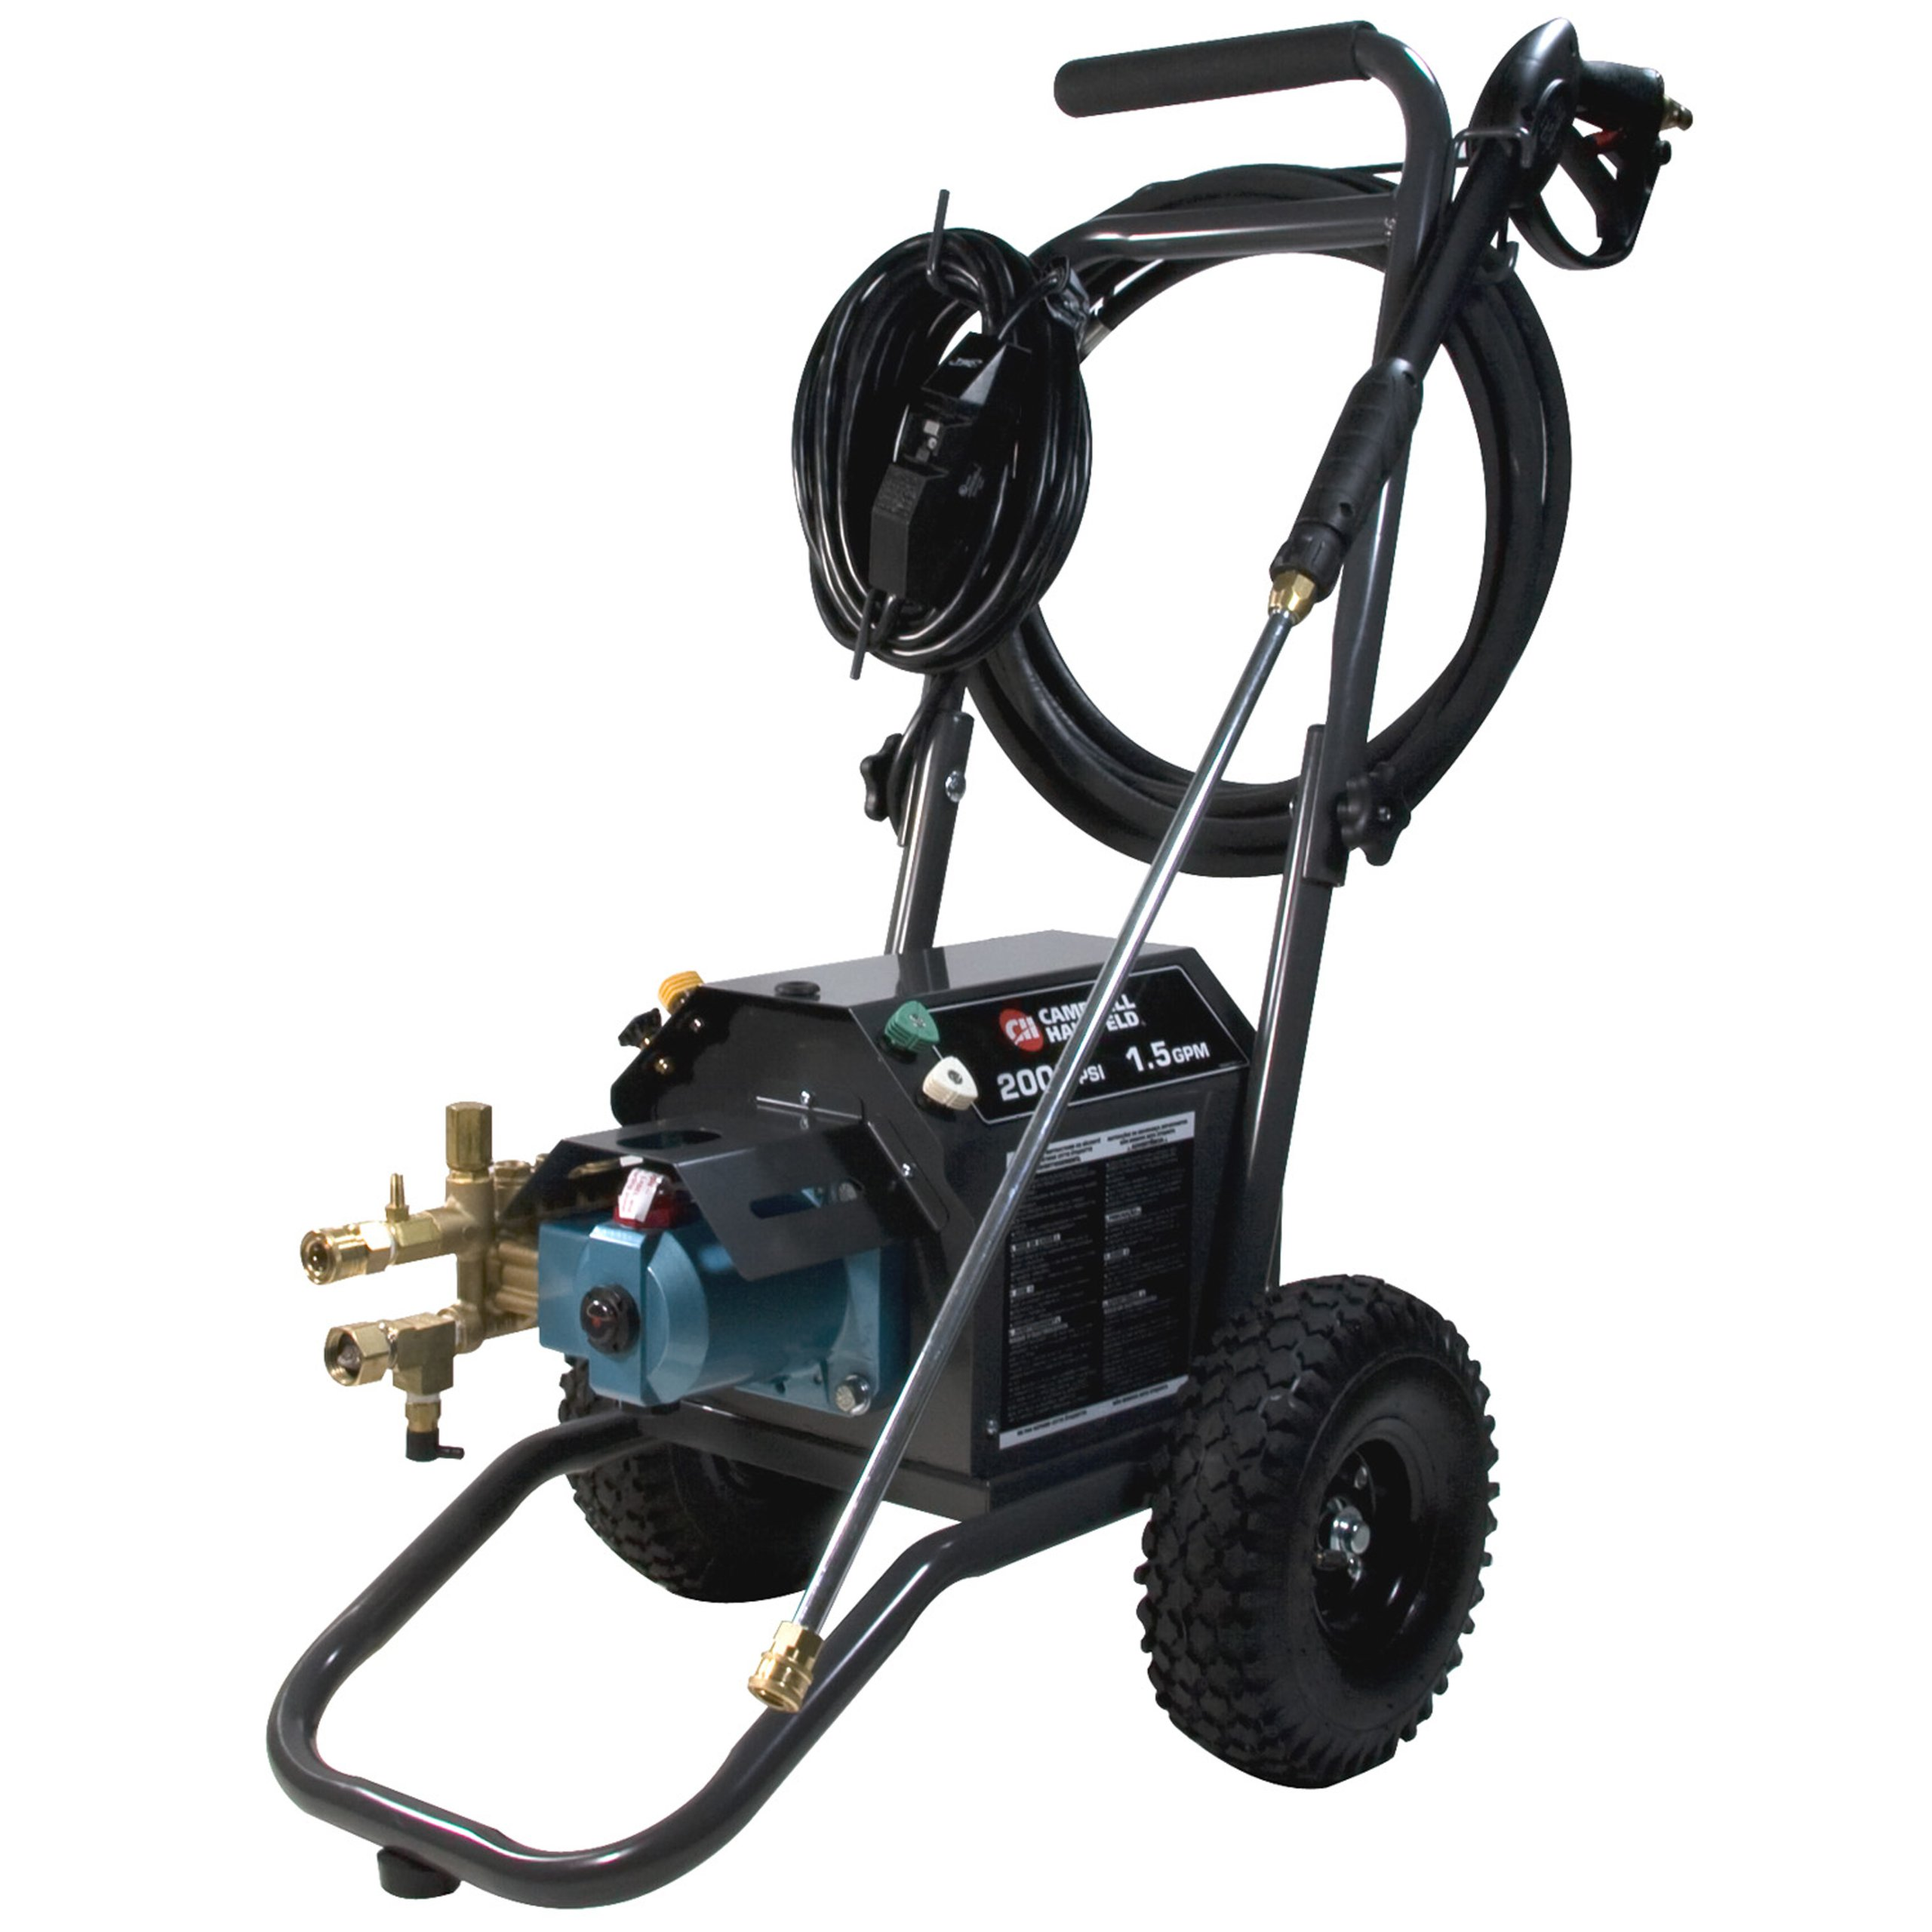 Campbell Hausfeld CP5211 Pressure Washer with 2,000 PSI